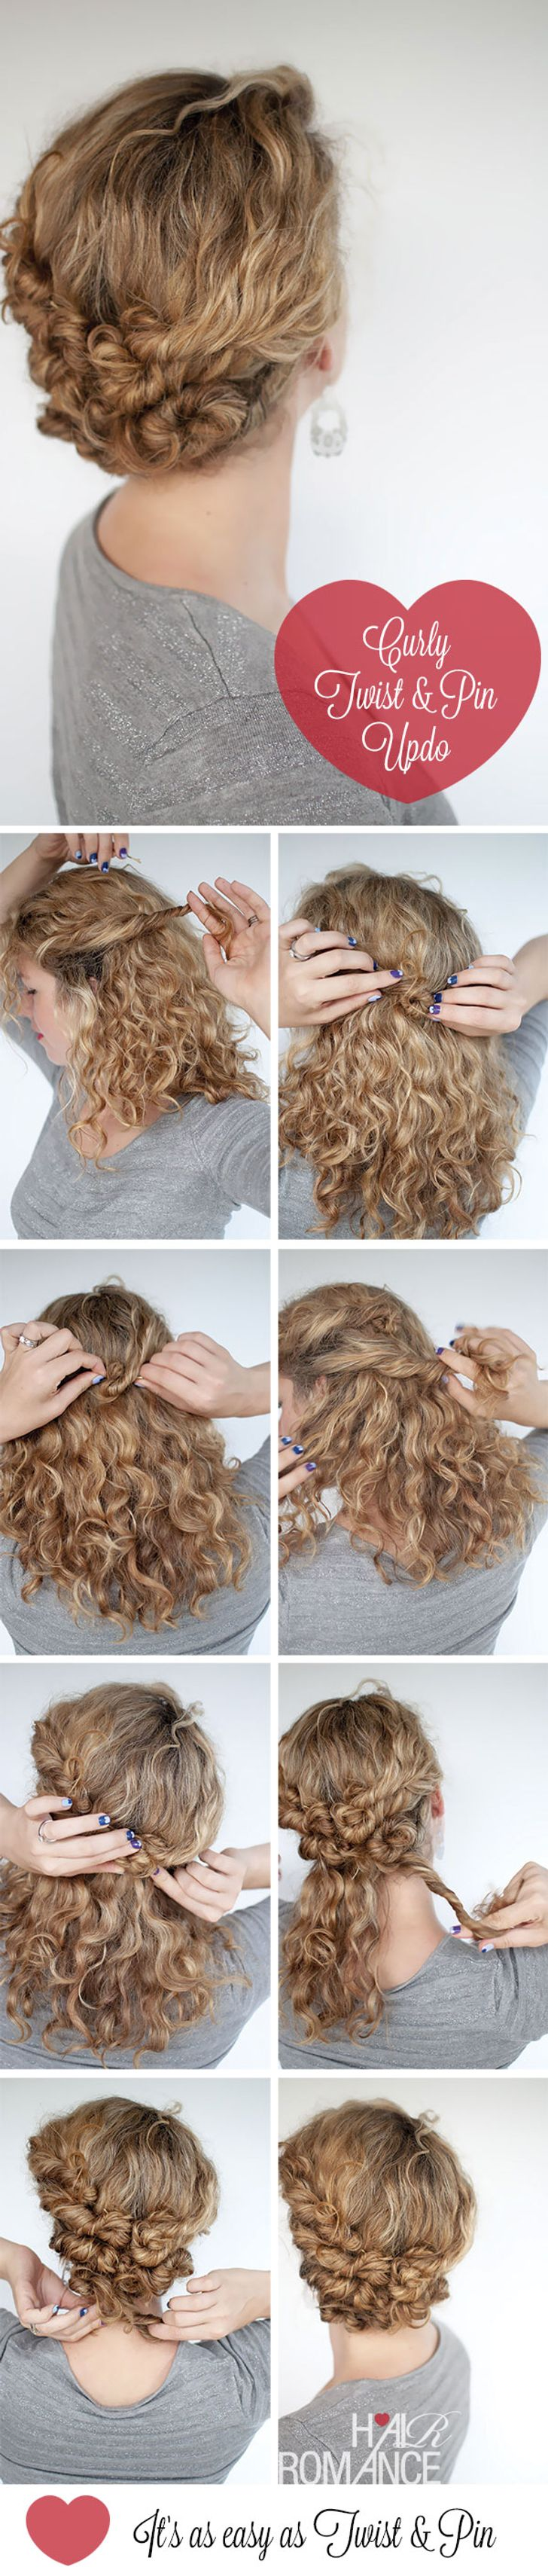 4 fantastic hairstyle tutorials for short and naturally curly hair